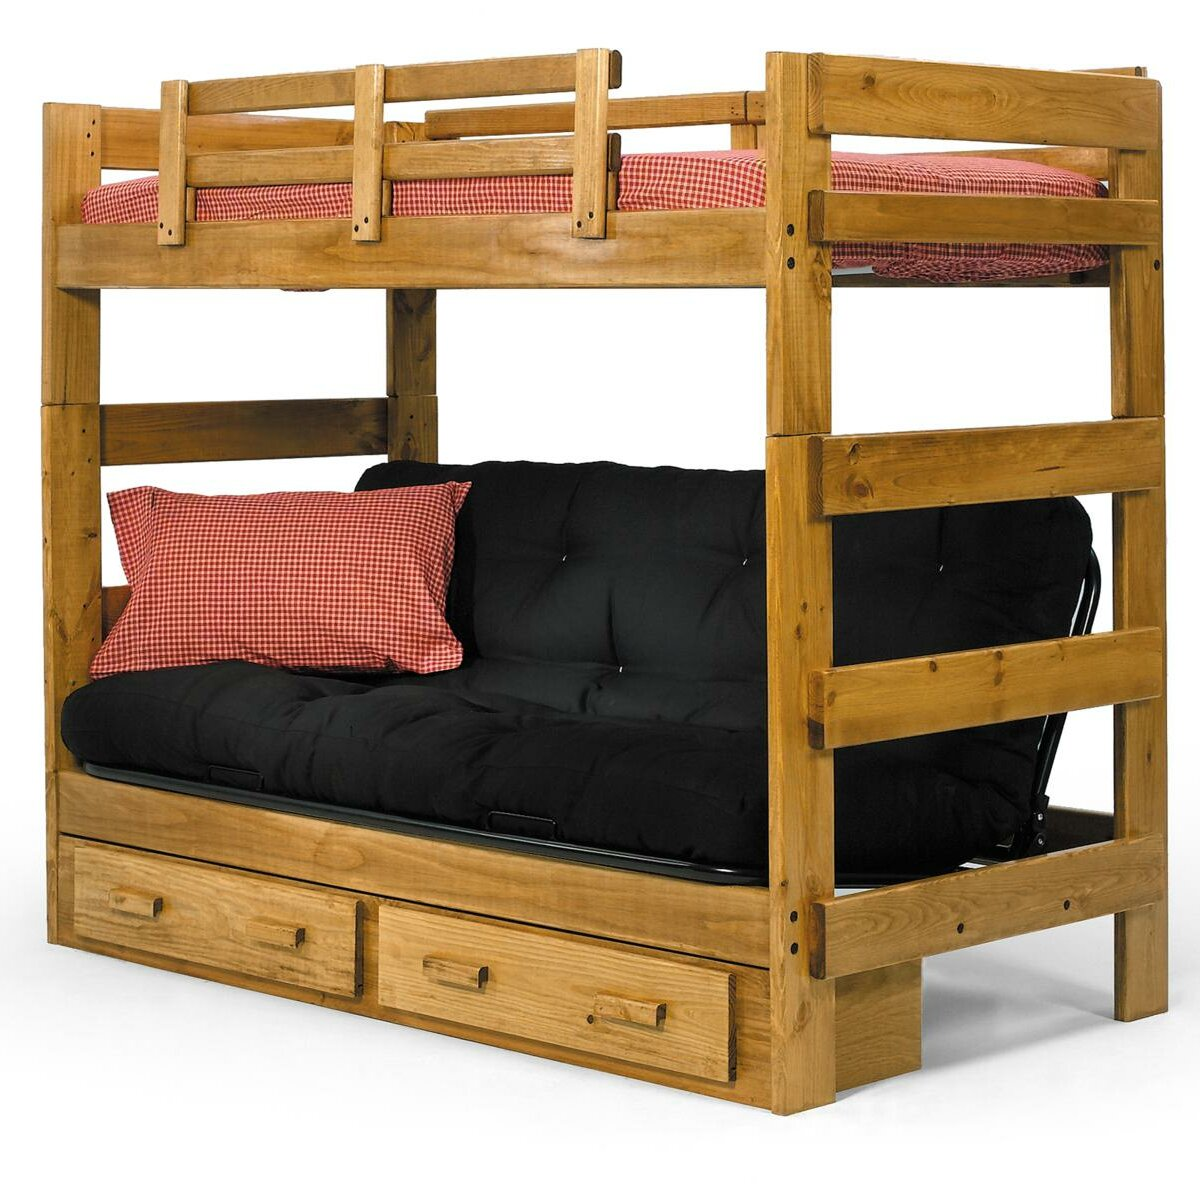 Bunk beds for kids with stairs - Twin Futon Bunk Bed With Storage